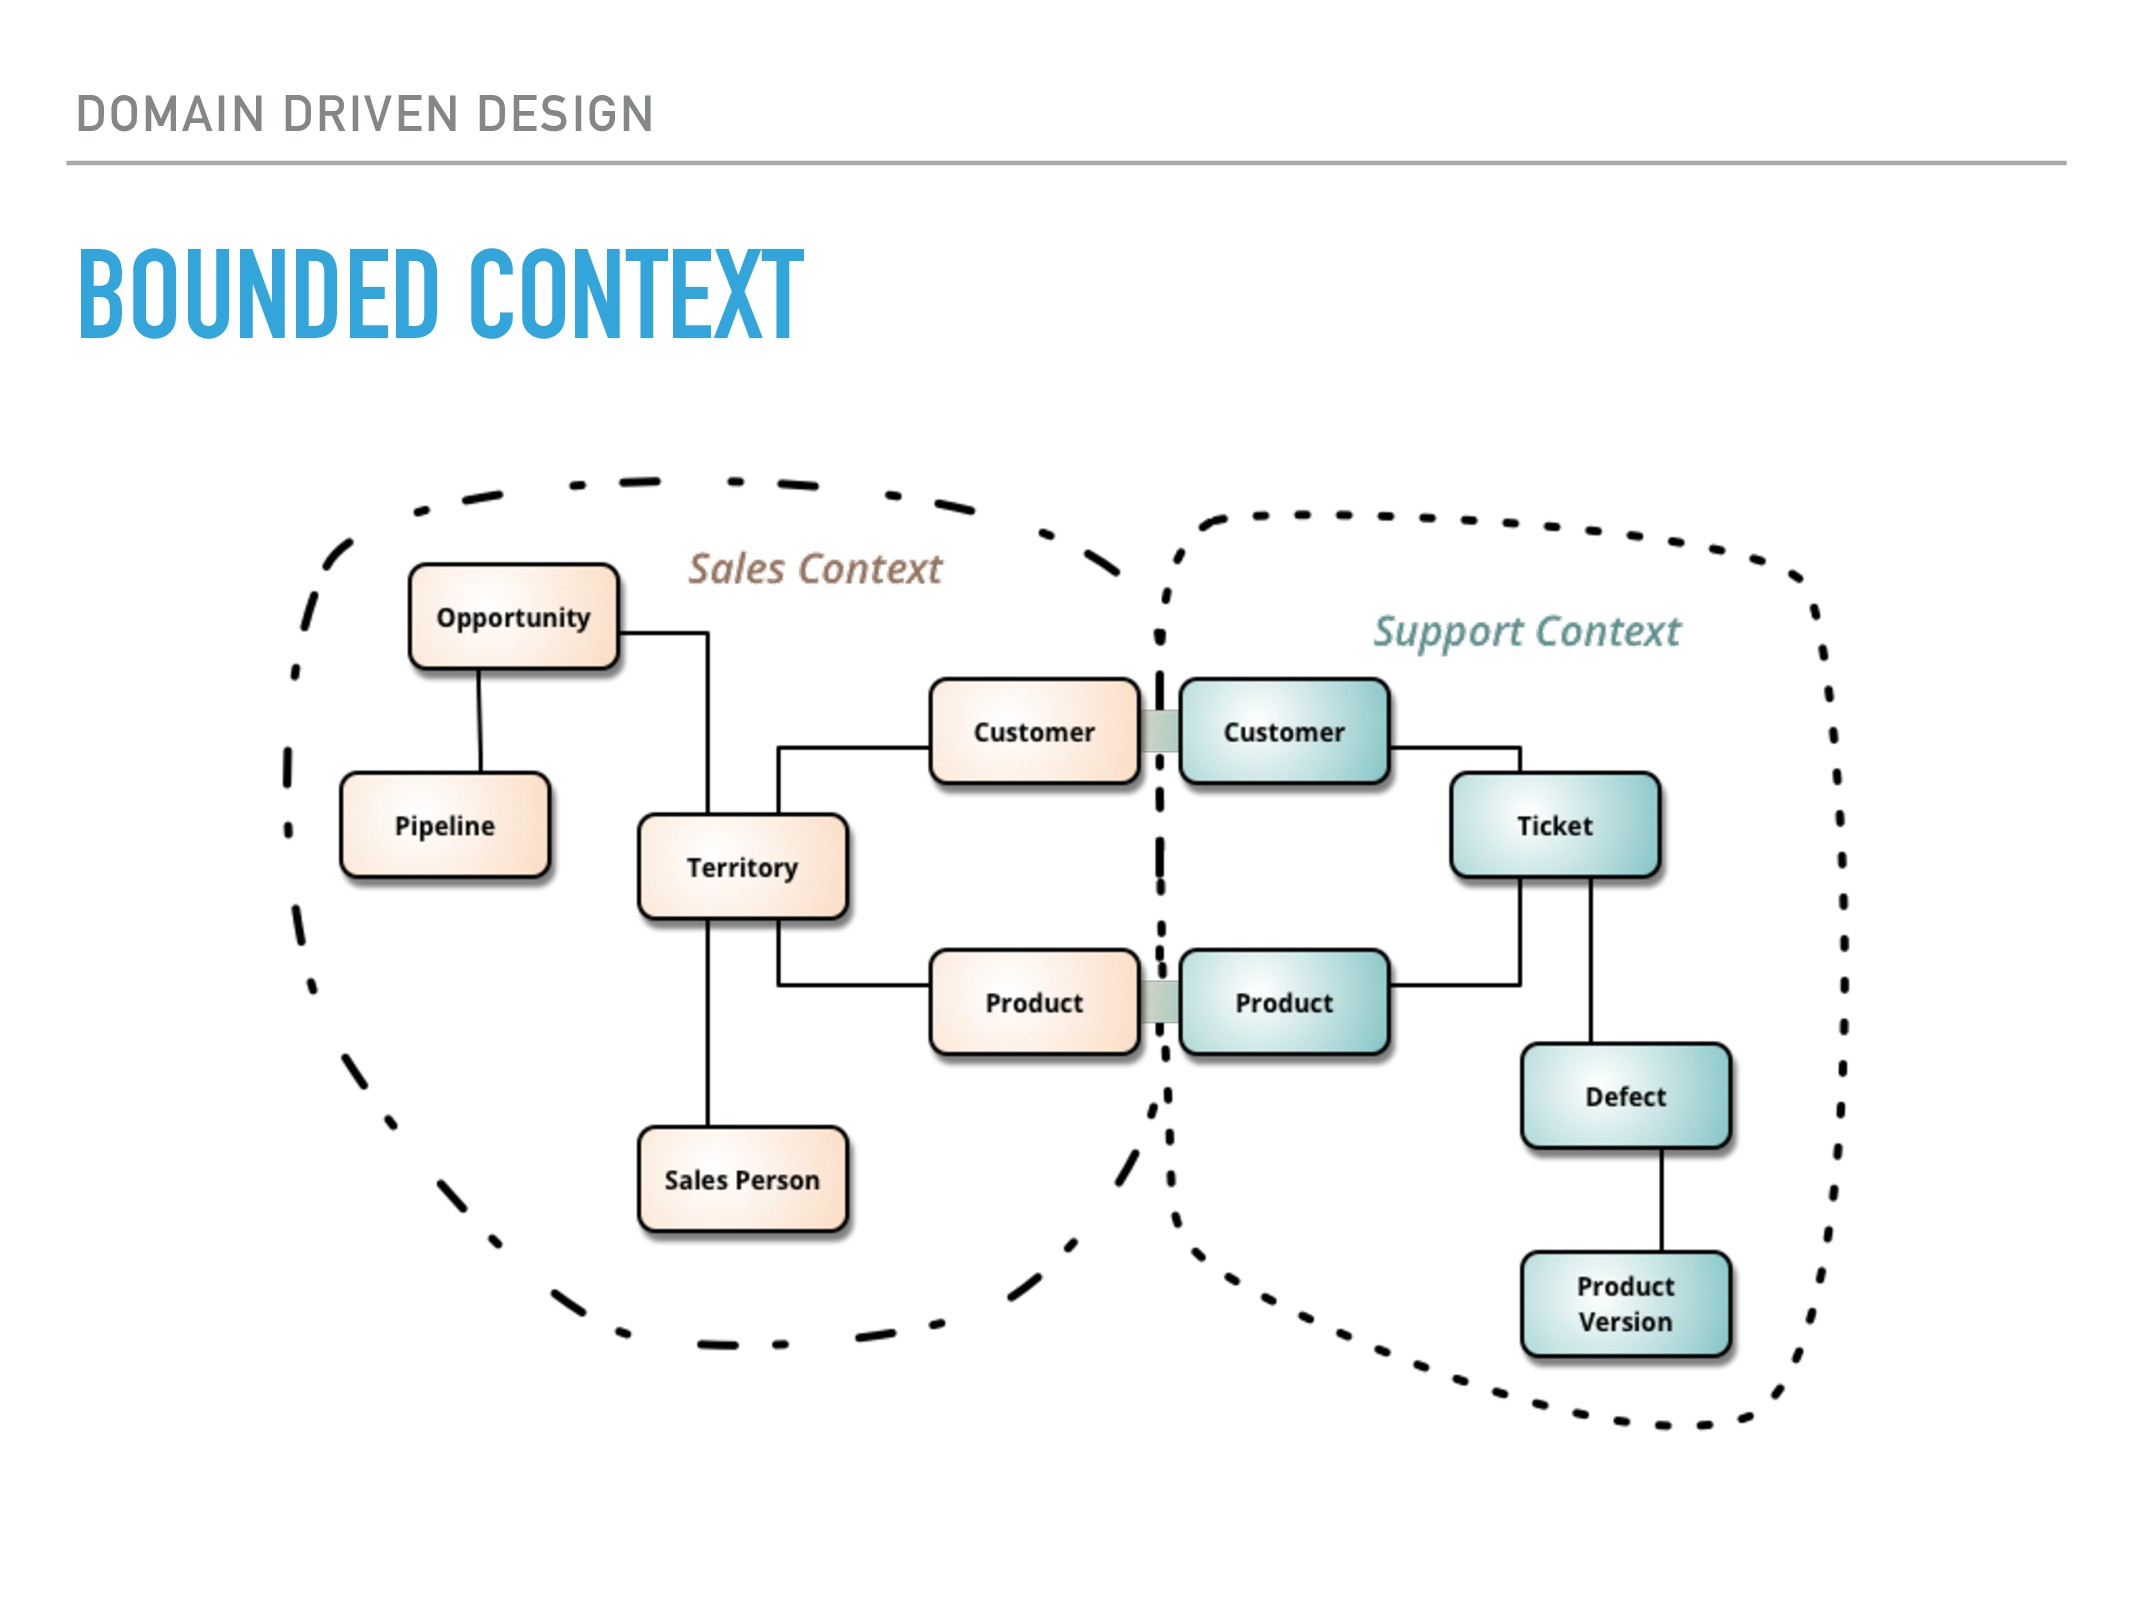 DOMAIN DRIVEN DESIGN BOUNDED CONTEXT